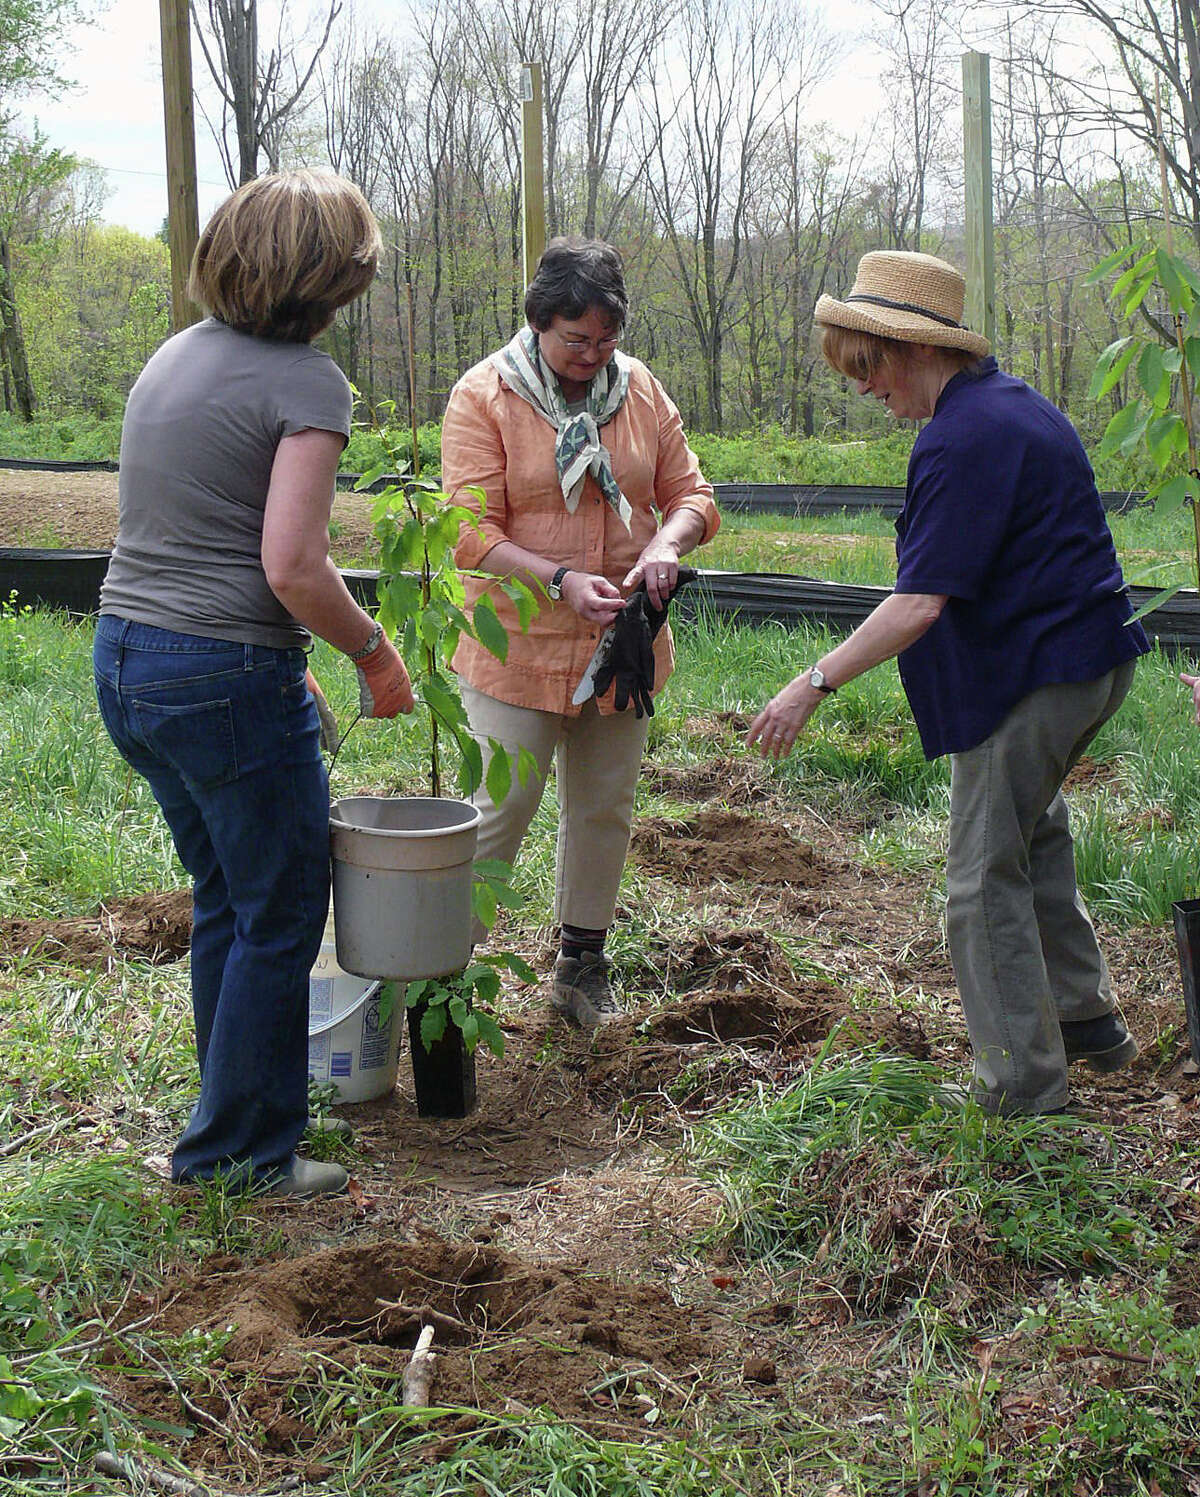 Members of the Fairfield Garden Club, from left, Moira Eick, president Peggy Moore, and Barbara Wooten, help plant American Chestnut trees Friday at the new softball field on Hoydens Lane to commemorate Arbor Day.